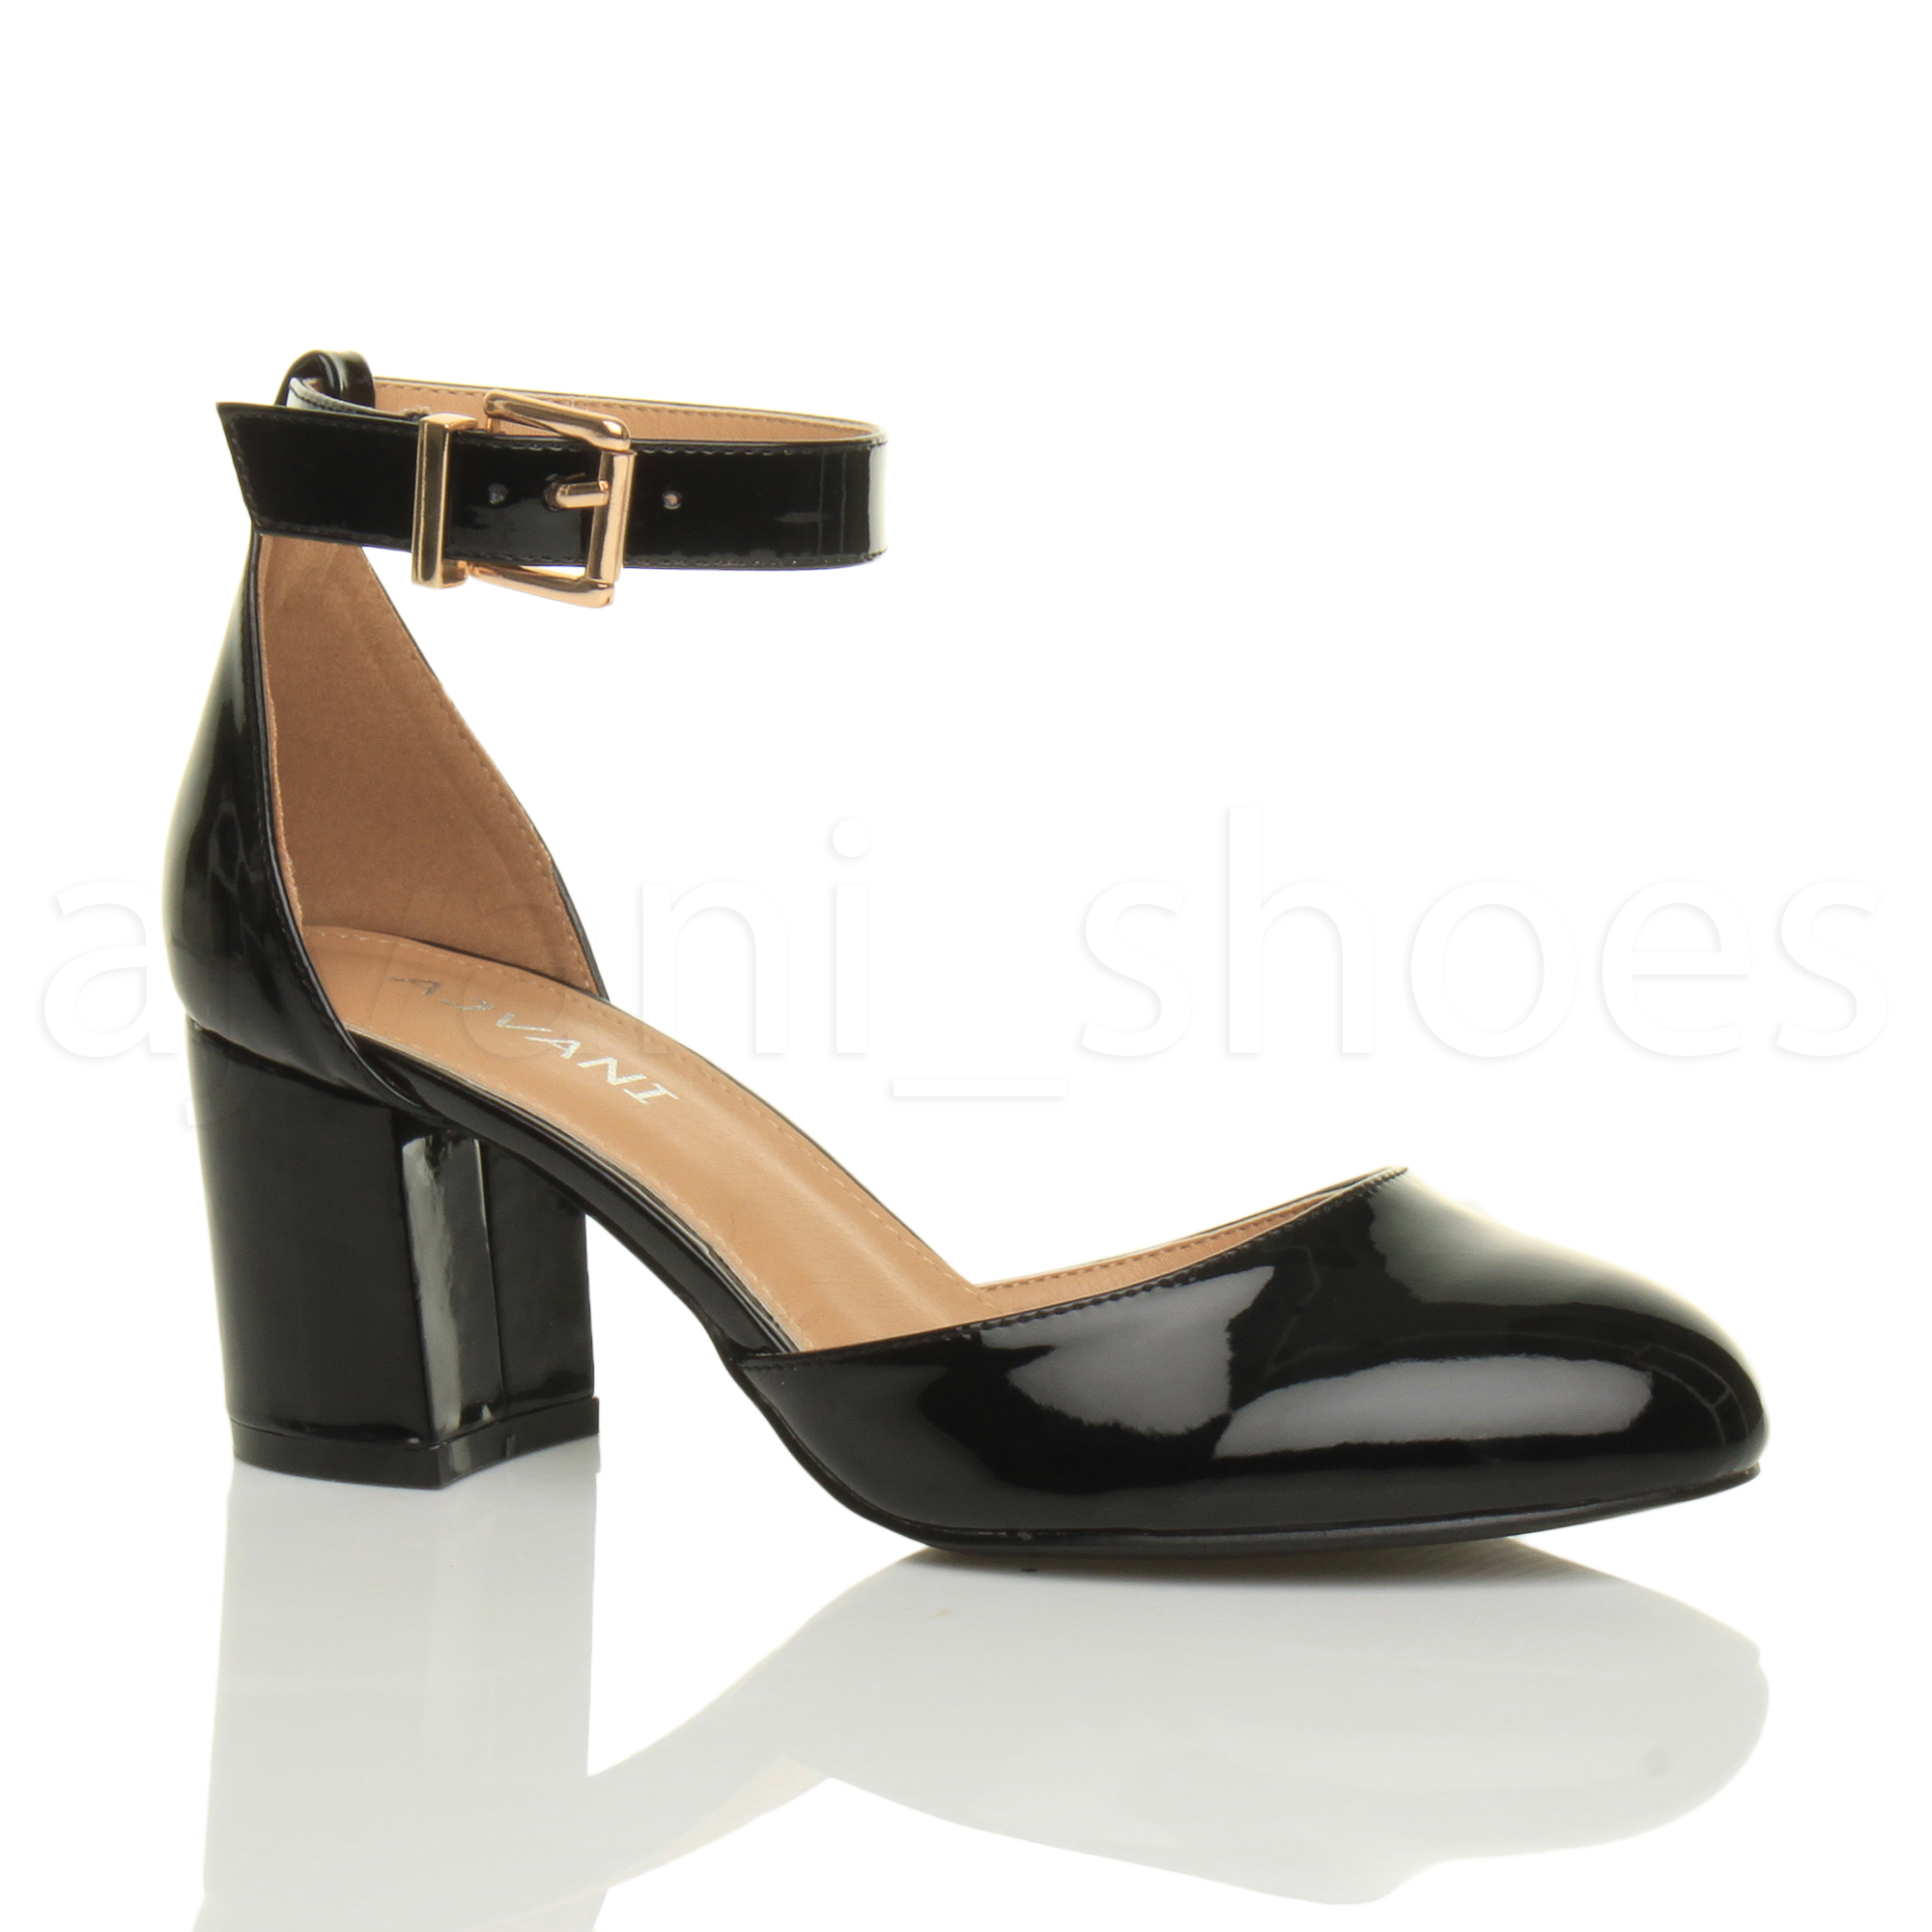 Ankle Strap Shoes Low Heel CpE66wmQ